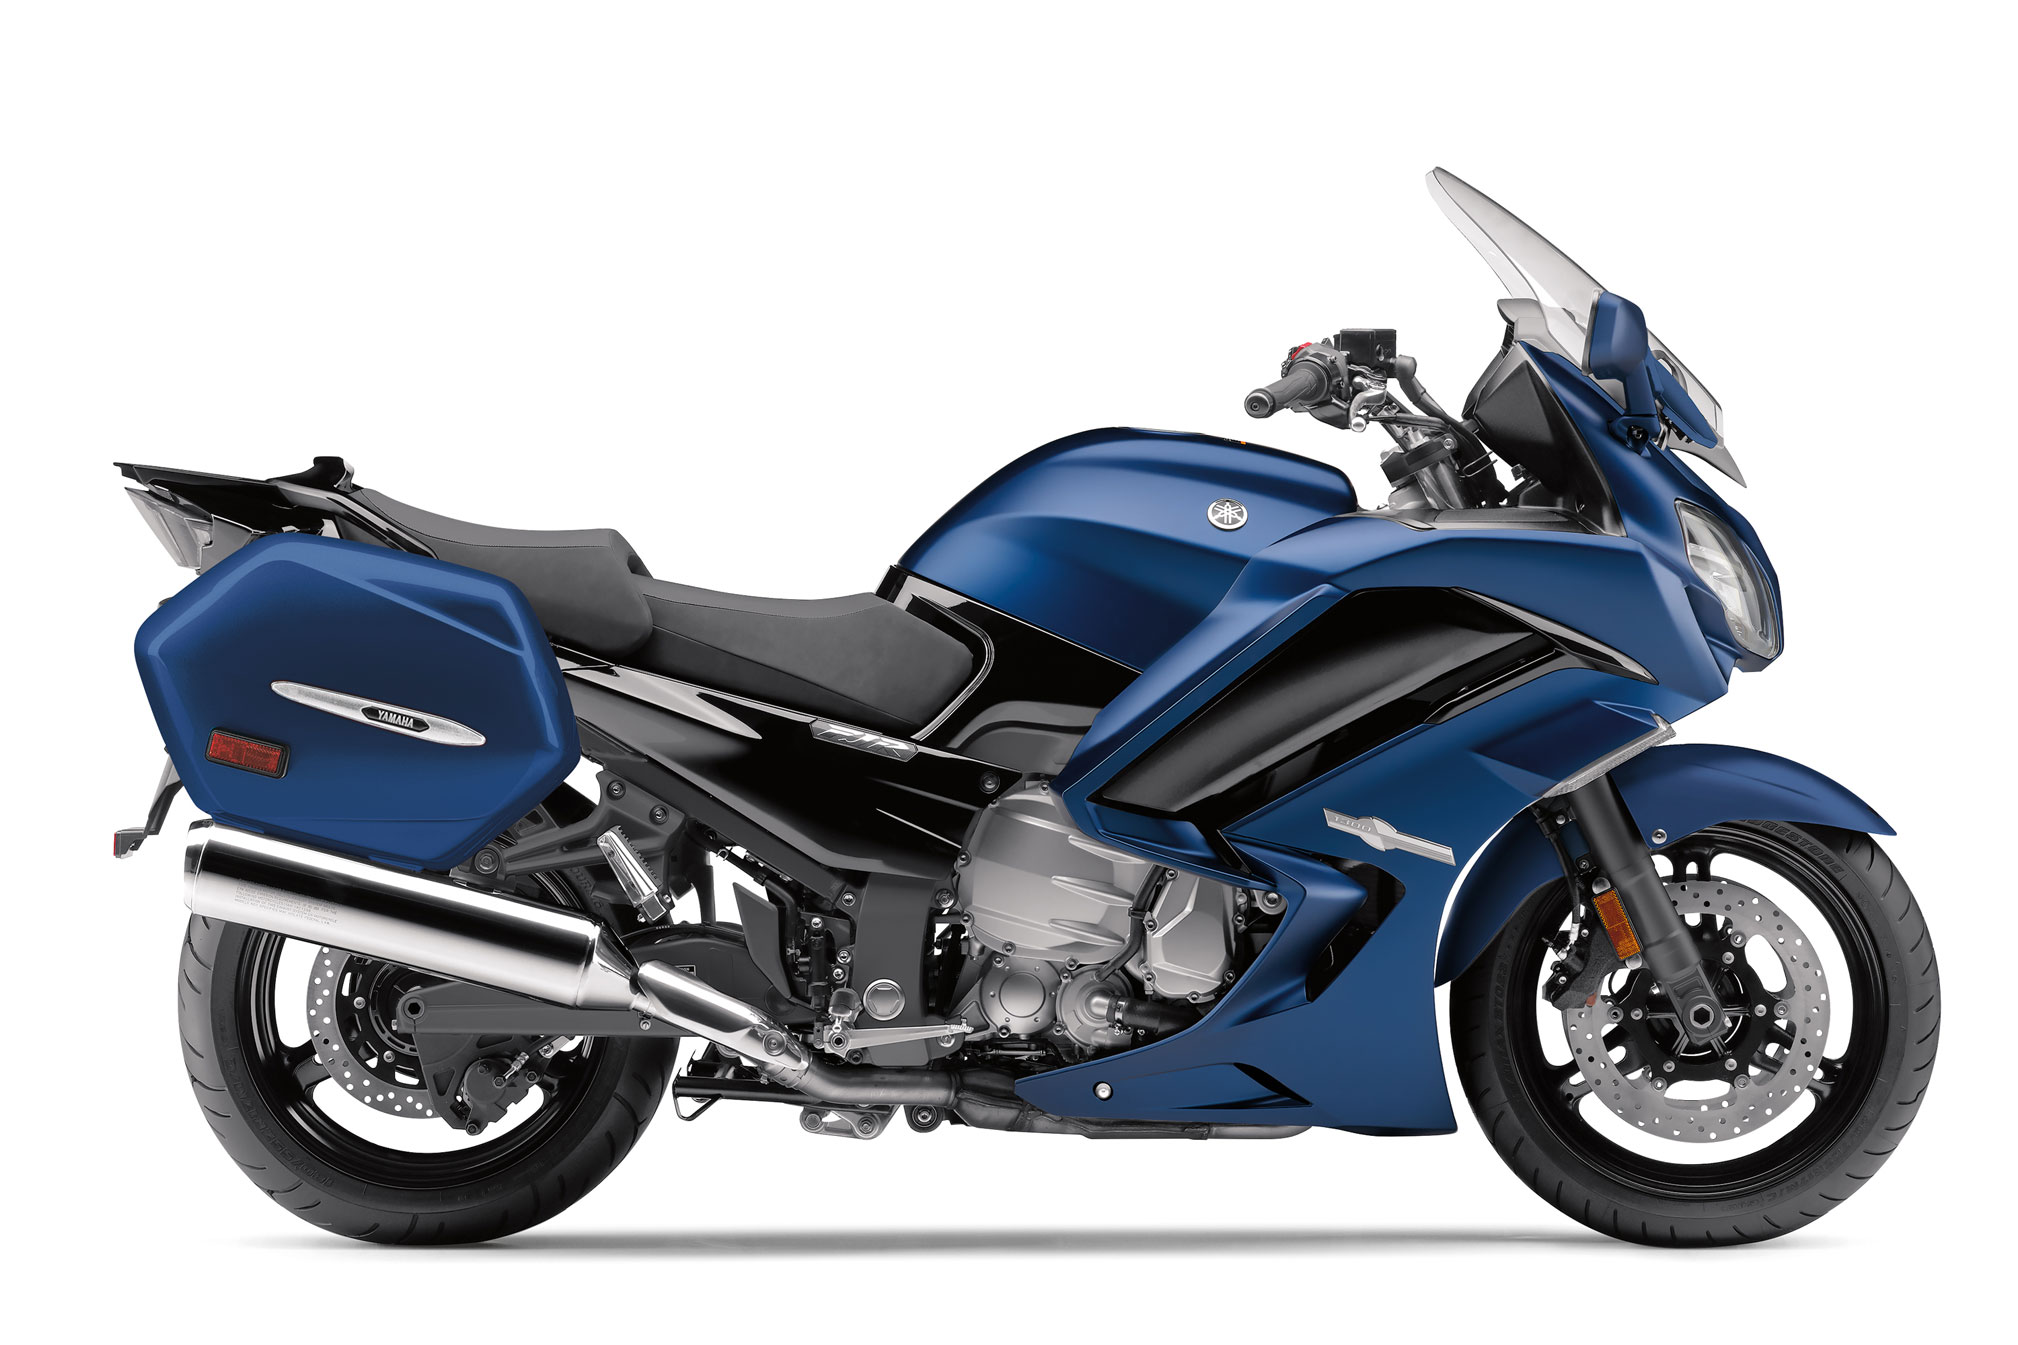 2018 yamaha fjr1300a review totalmotorcycle for Yamaha sport bikes models